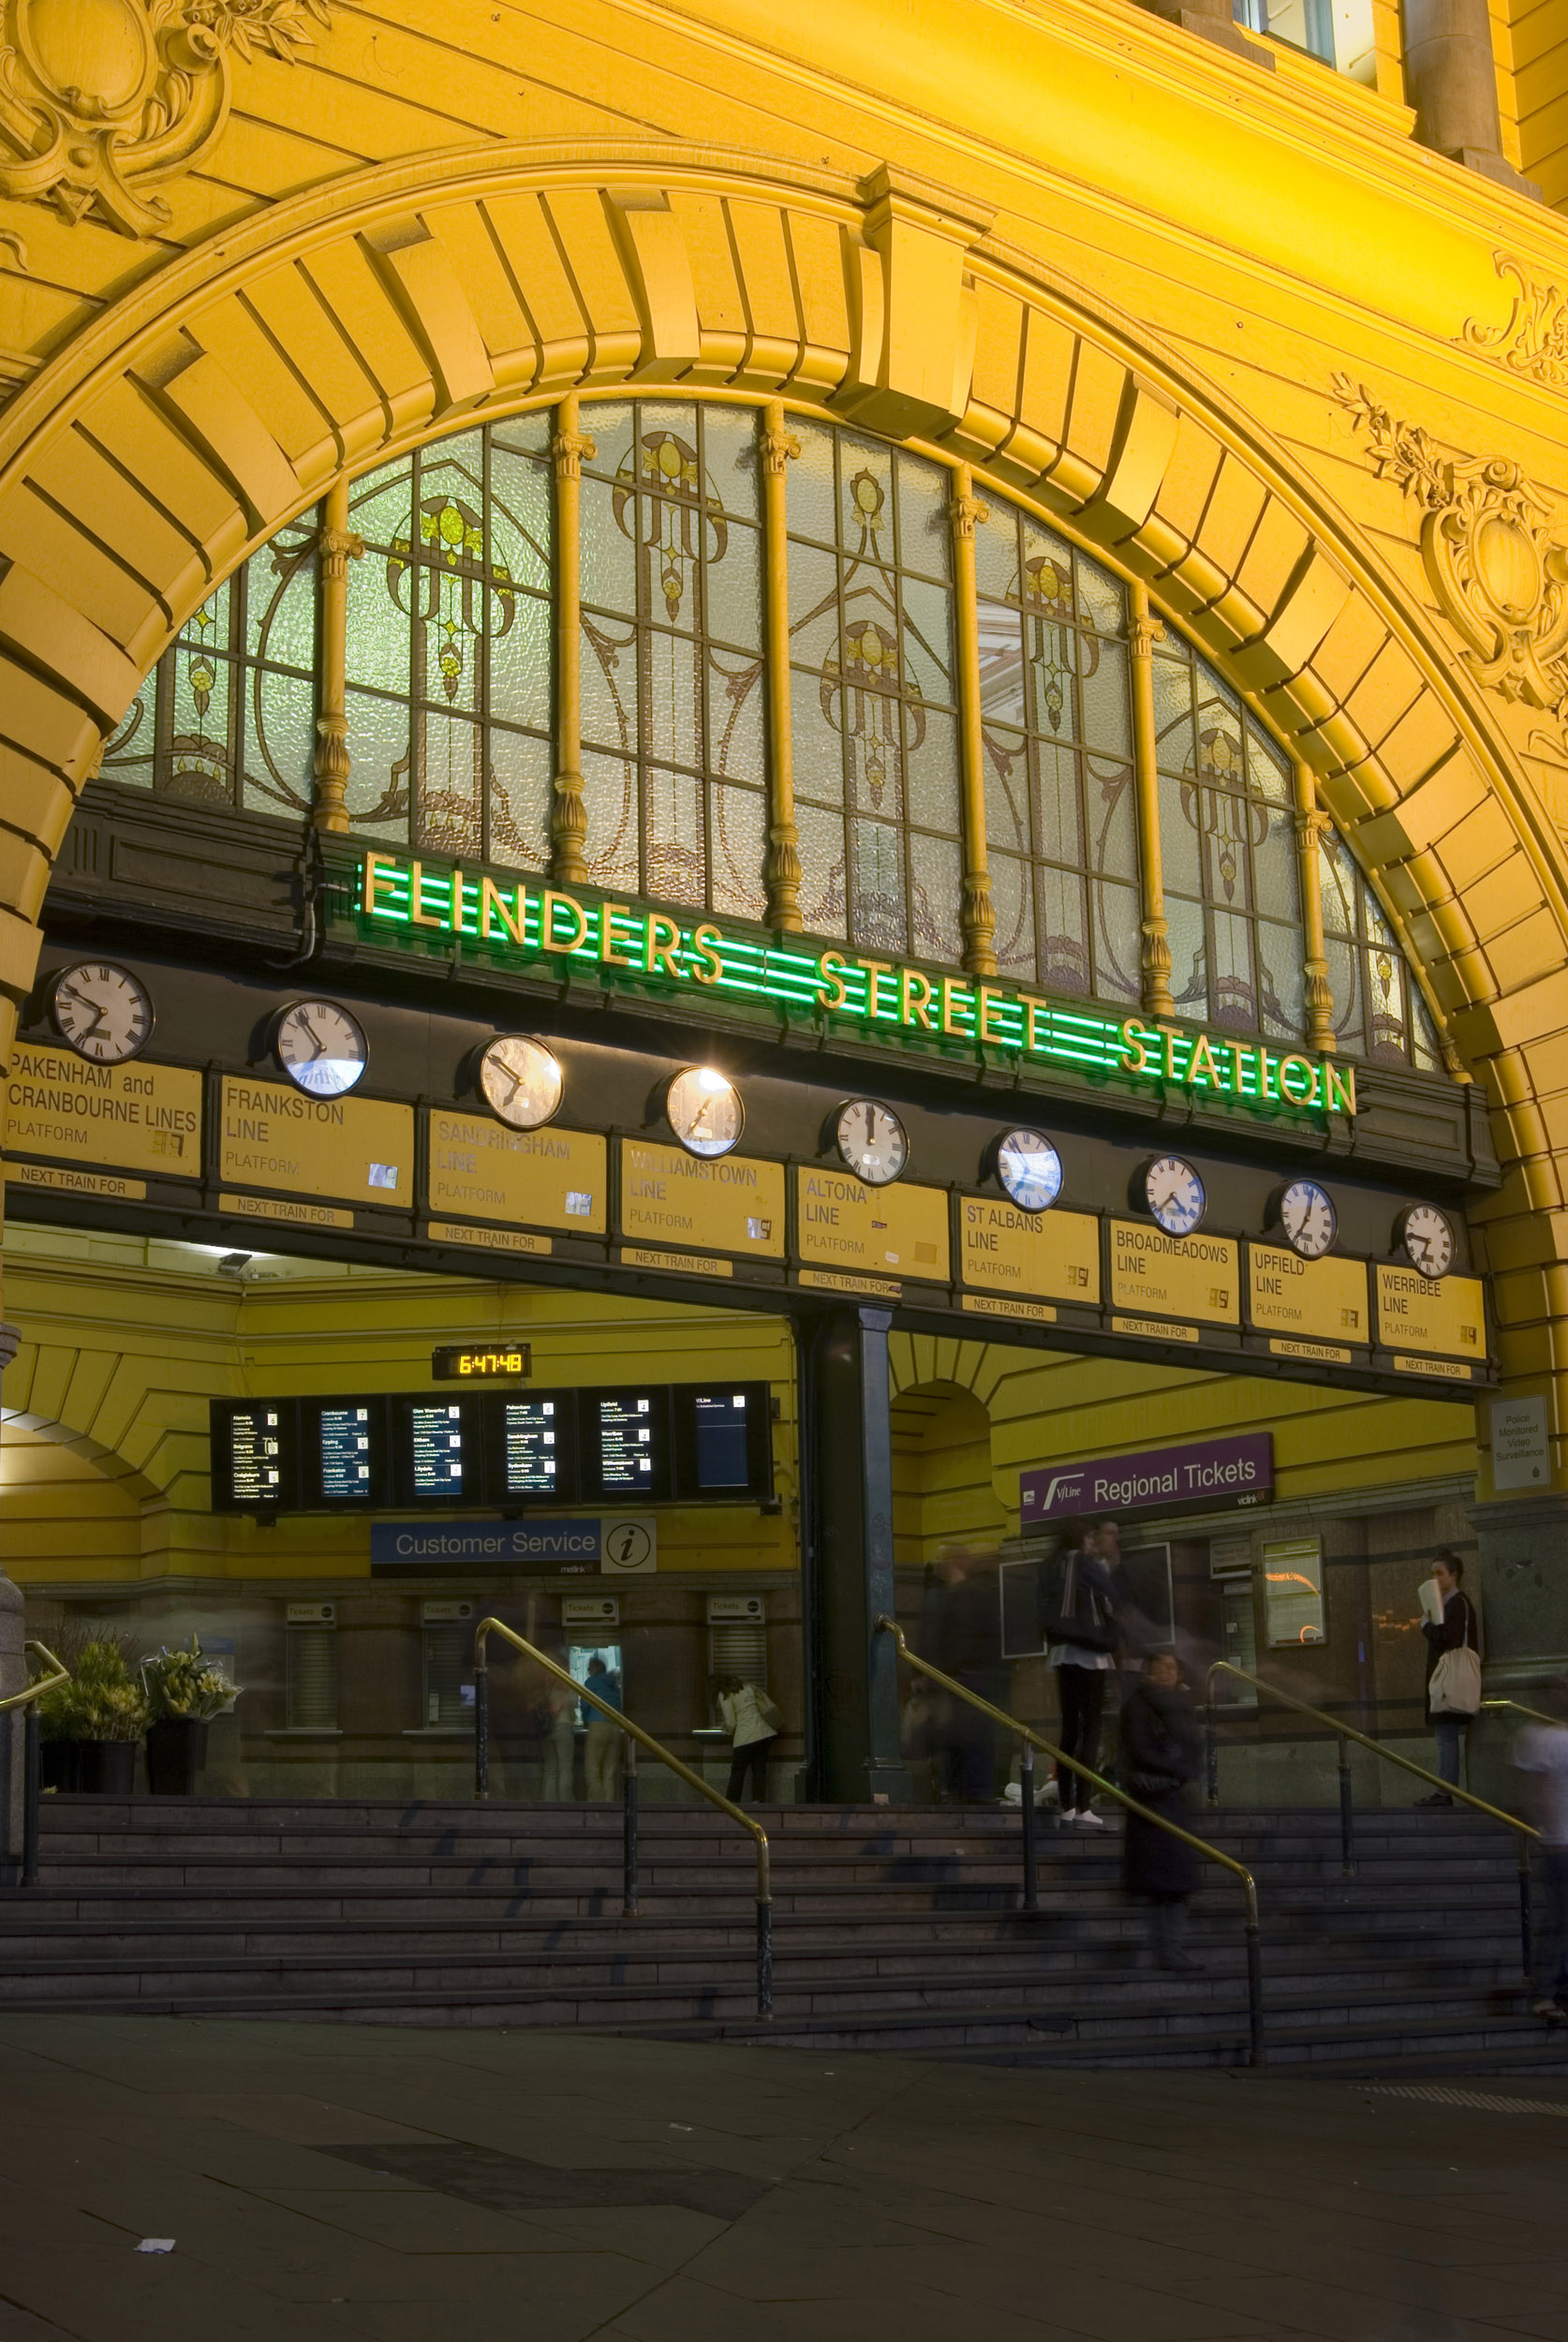 The entrance to Flinders street railway station in Melbourne, Australia at night time.